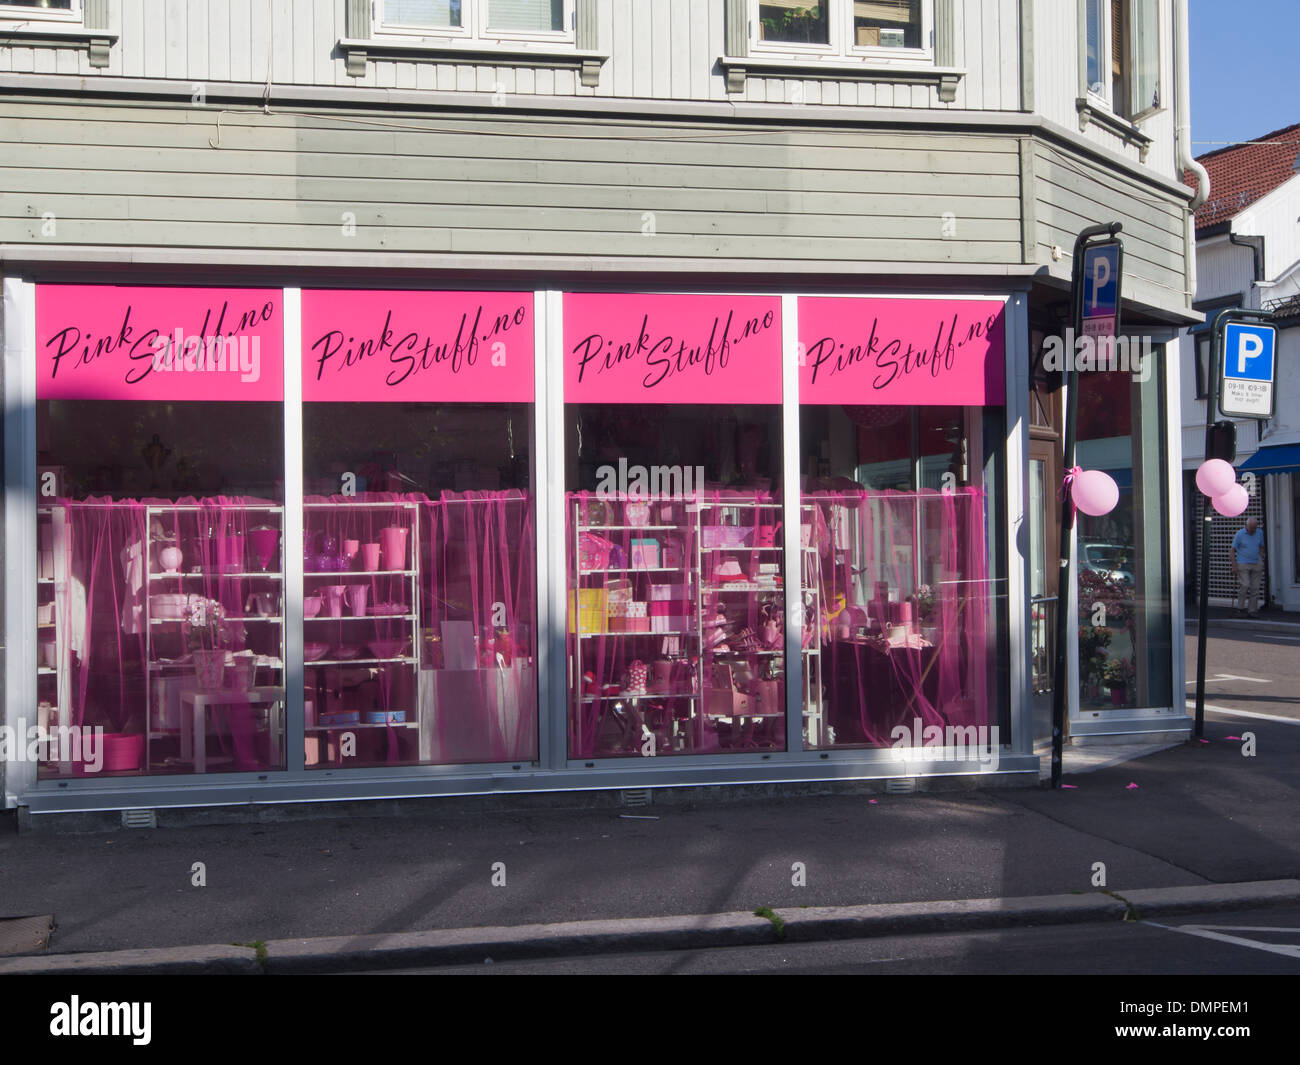 Tønsberg Norway, corner shop in old wooden house selling all things pink, called pink stuff - Stock Image